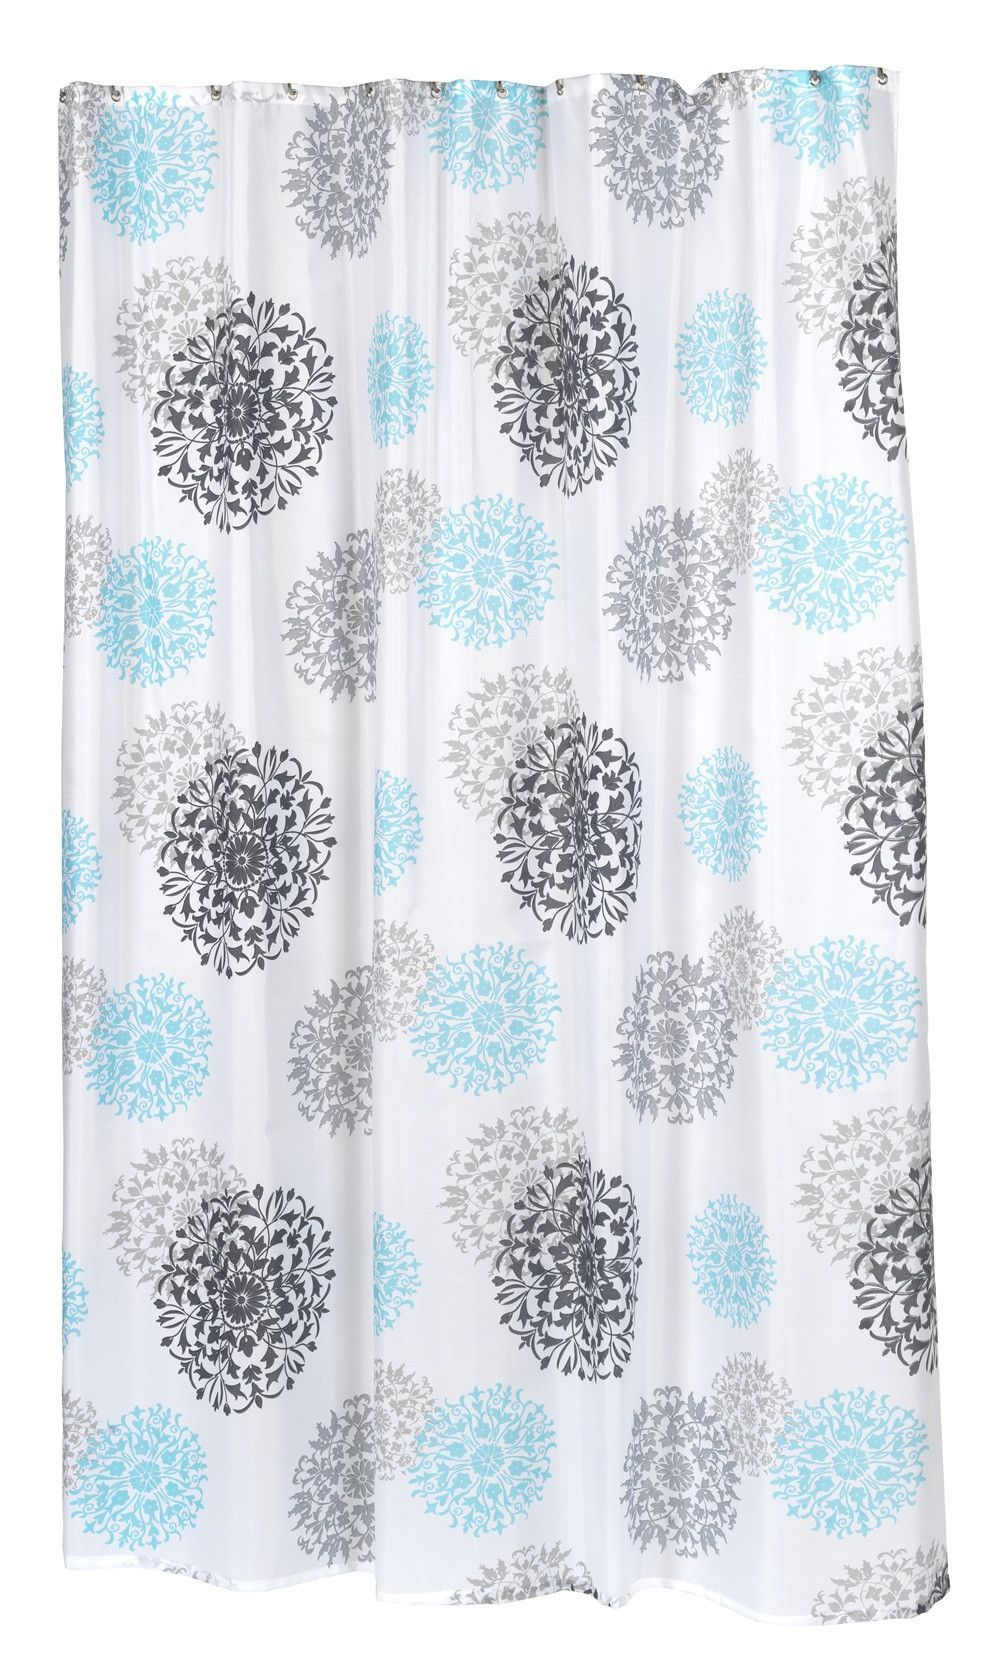 Our Extra Long Isabella Fabric Shower Curtain Features A Lively Floral Pattern Which Is